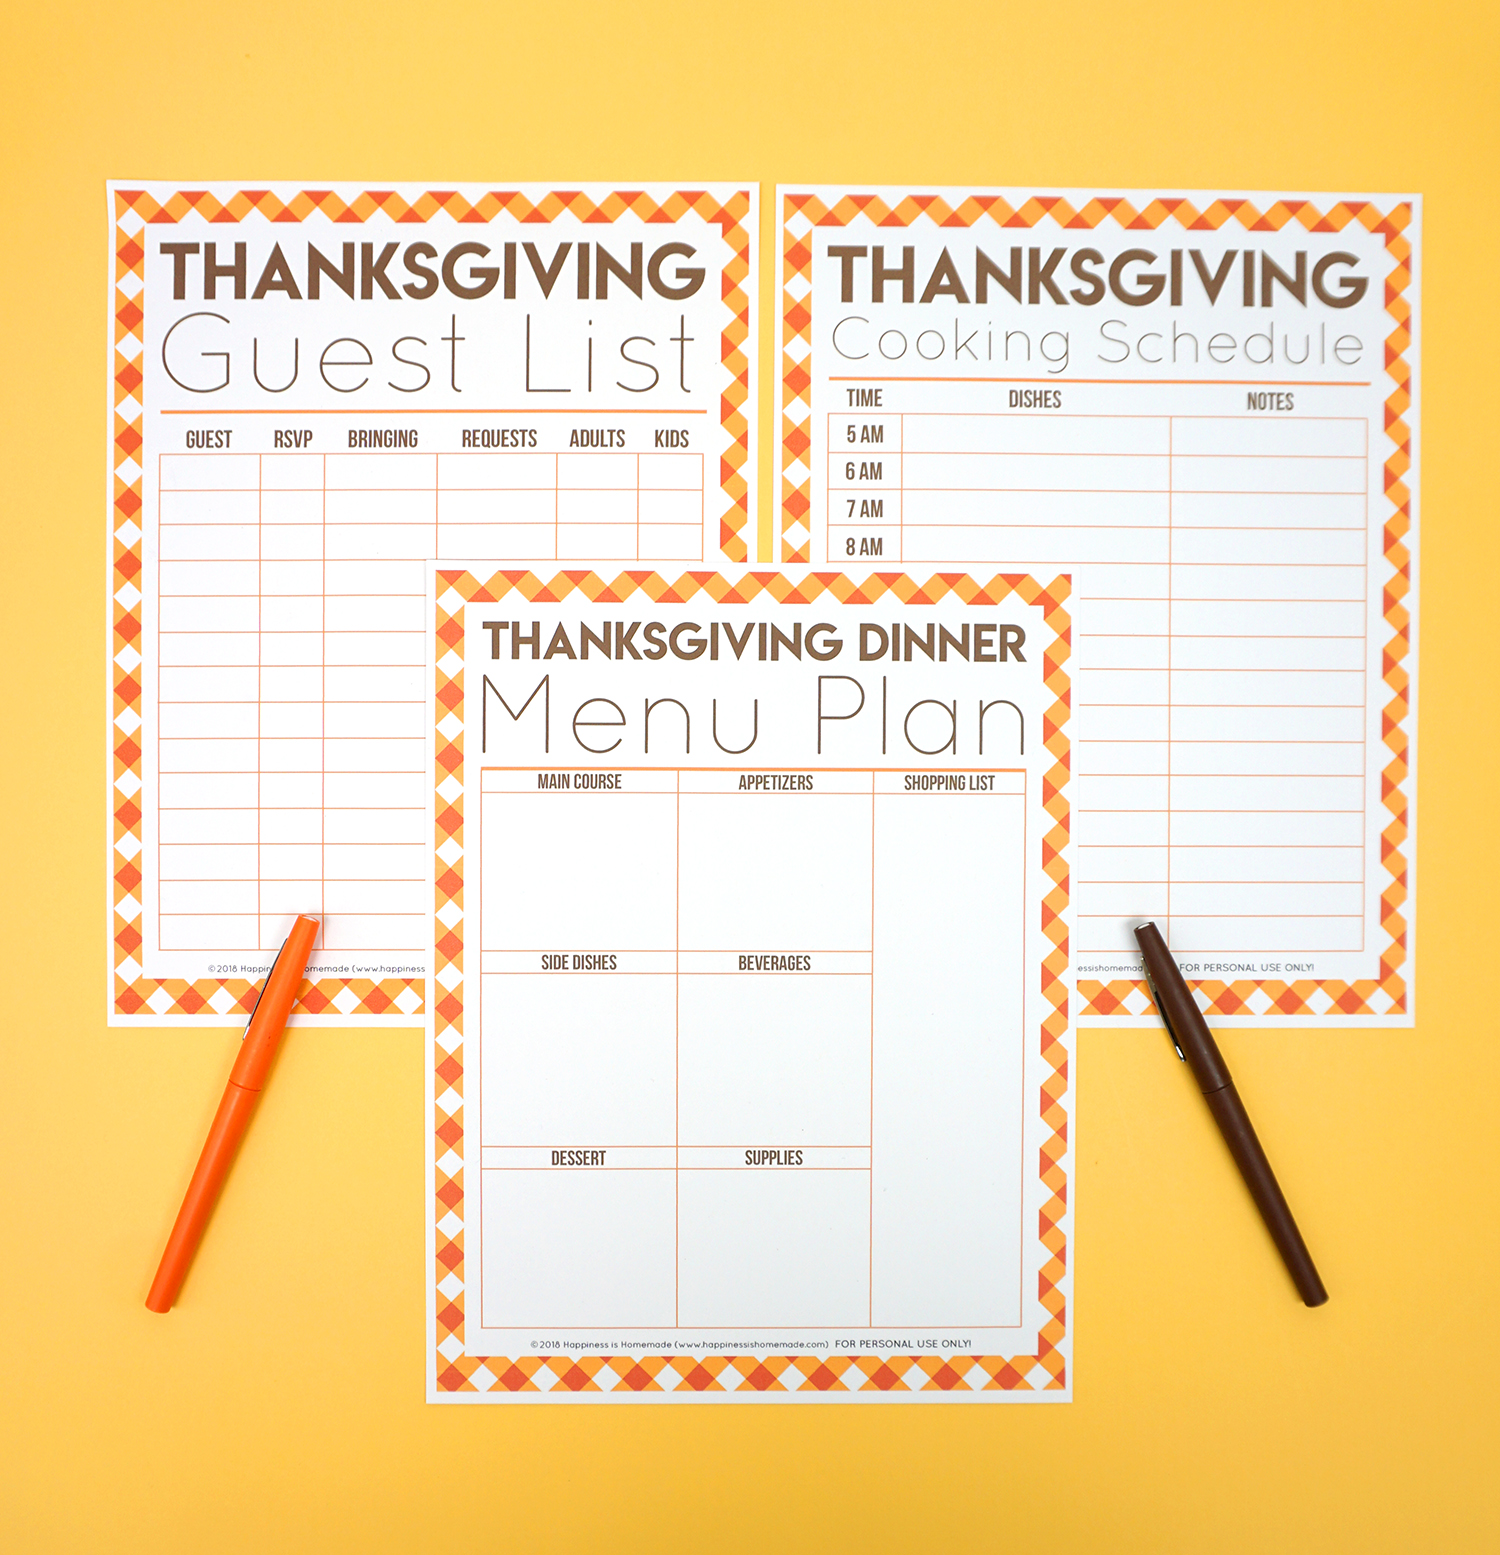 photo about Thanksgiving Menu Planner Printable known as No cost Thanksgiving Printables - Menu Planner, Visitor Record